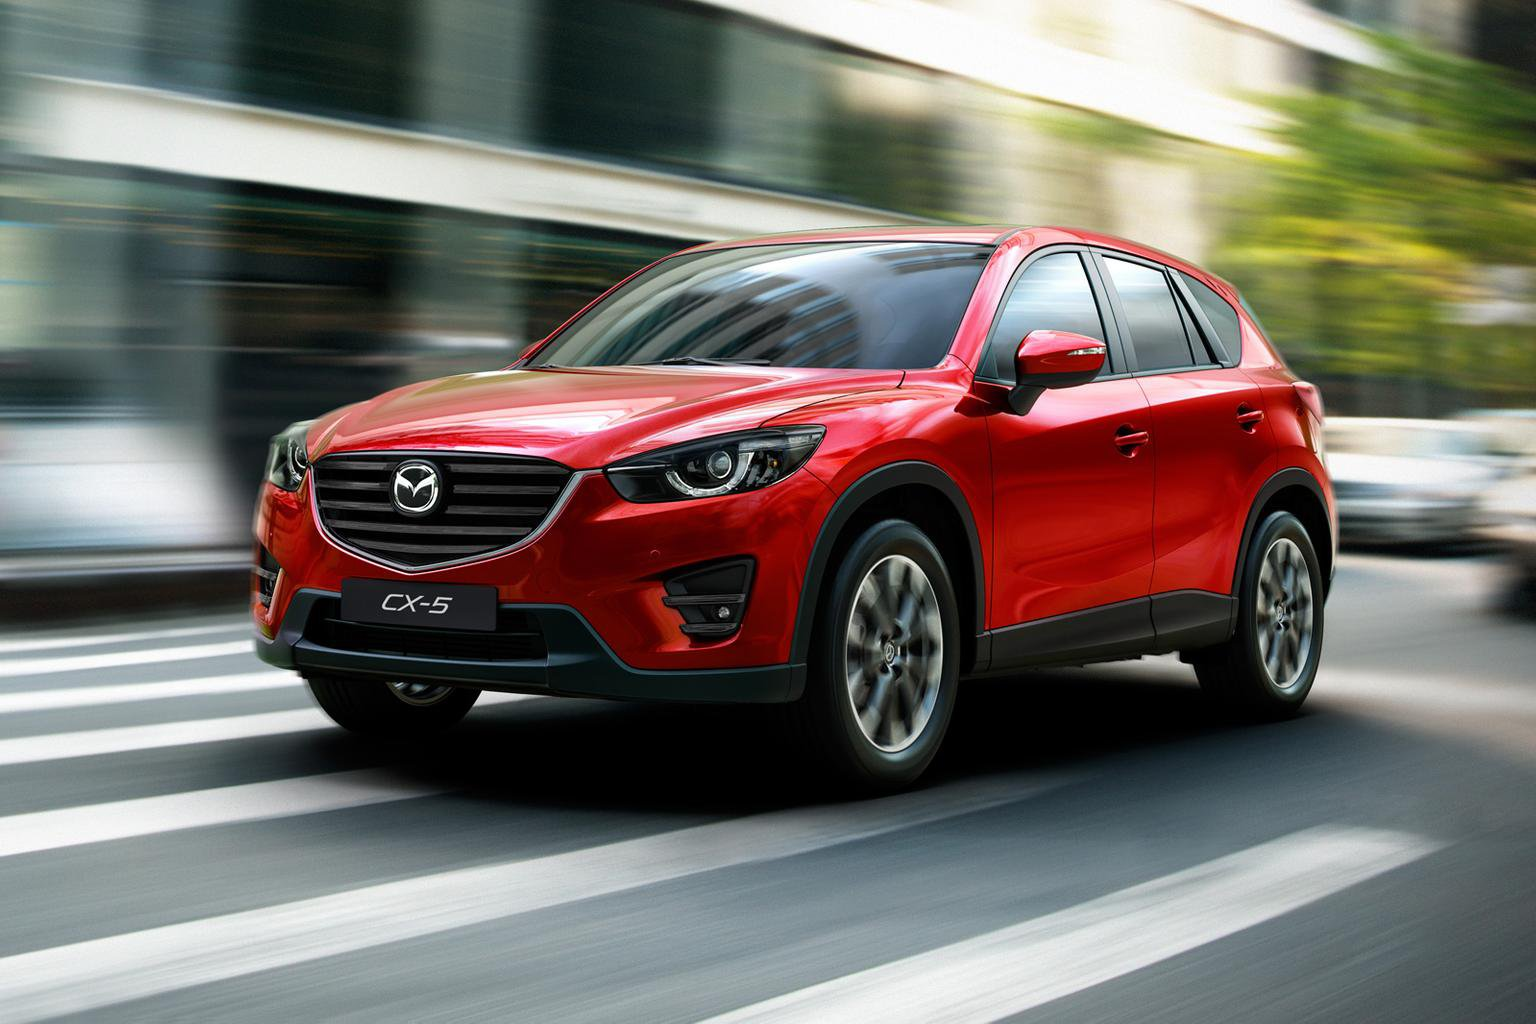 2015 Mazda CX-5 - full pricing, specs and engines